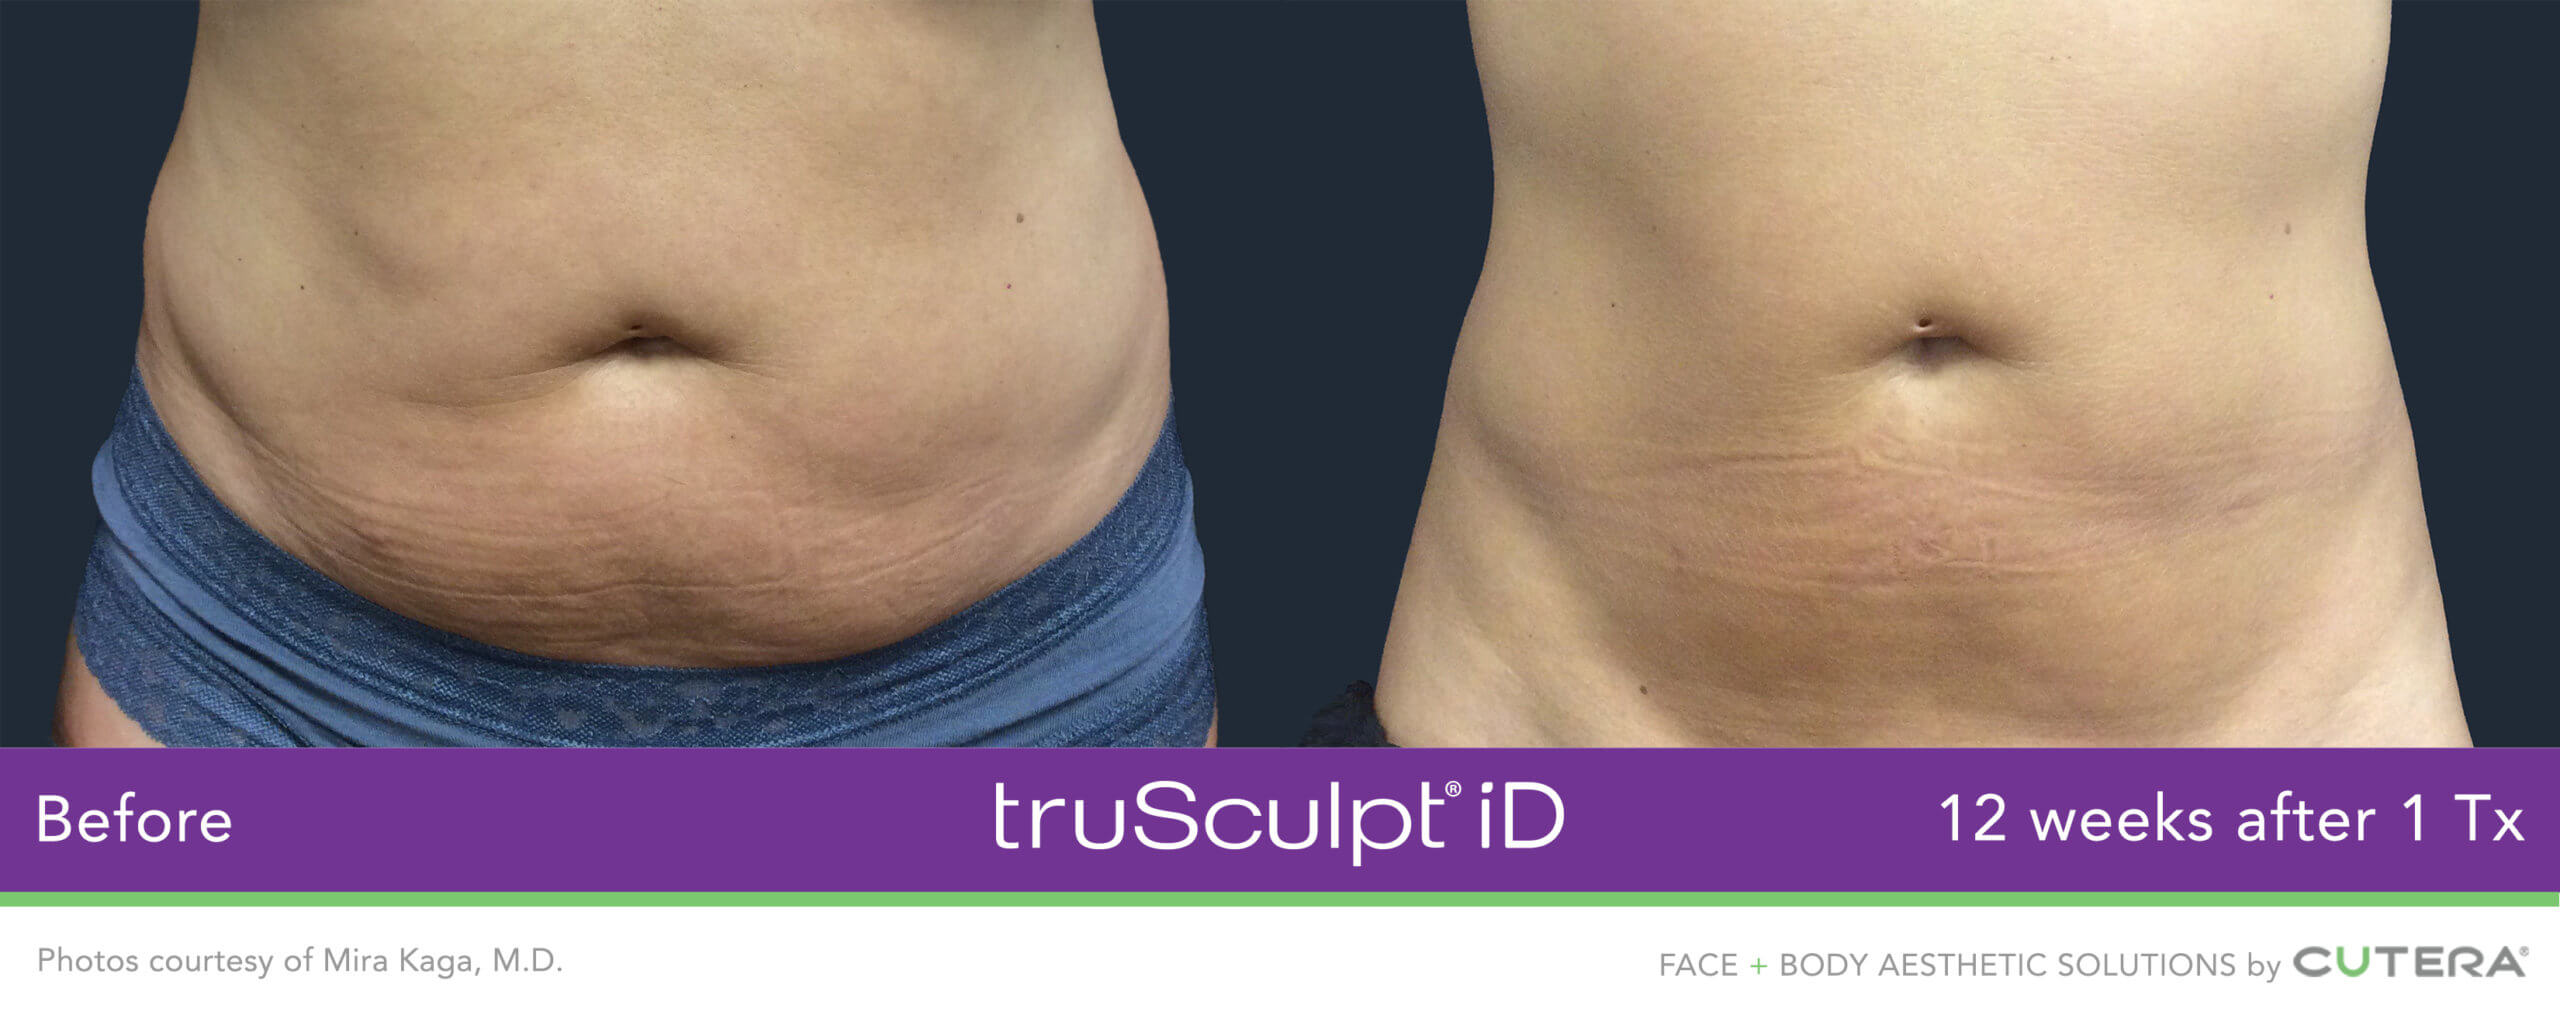 Before and After of the truSculpt iD treatment on a womans belly